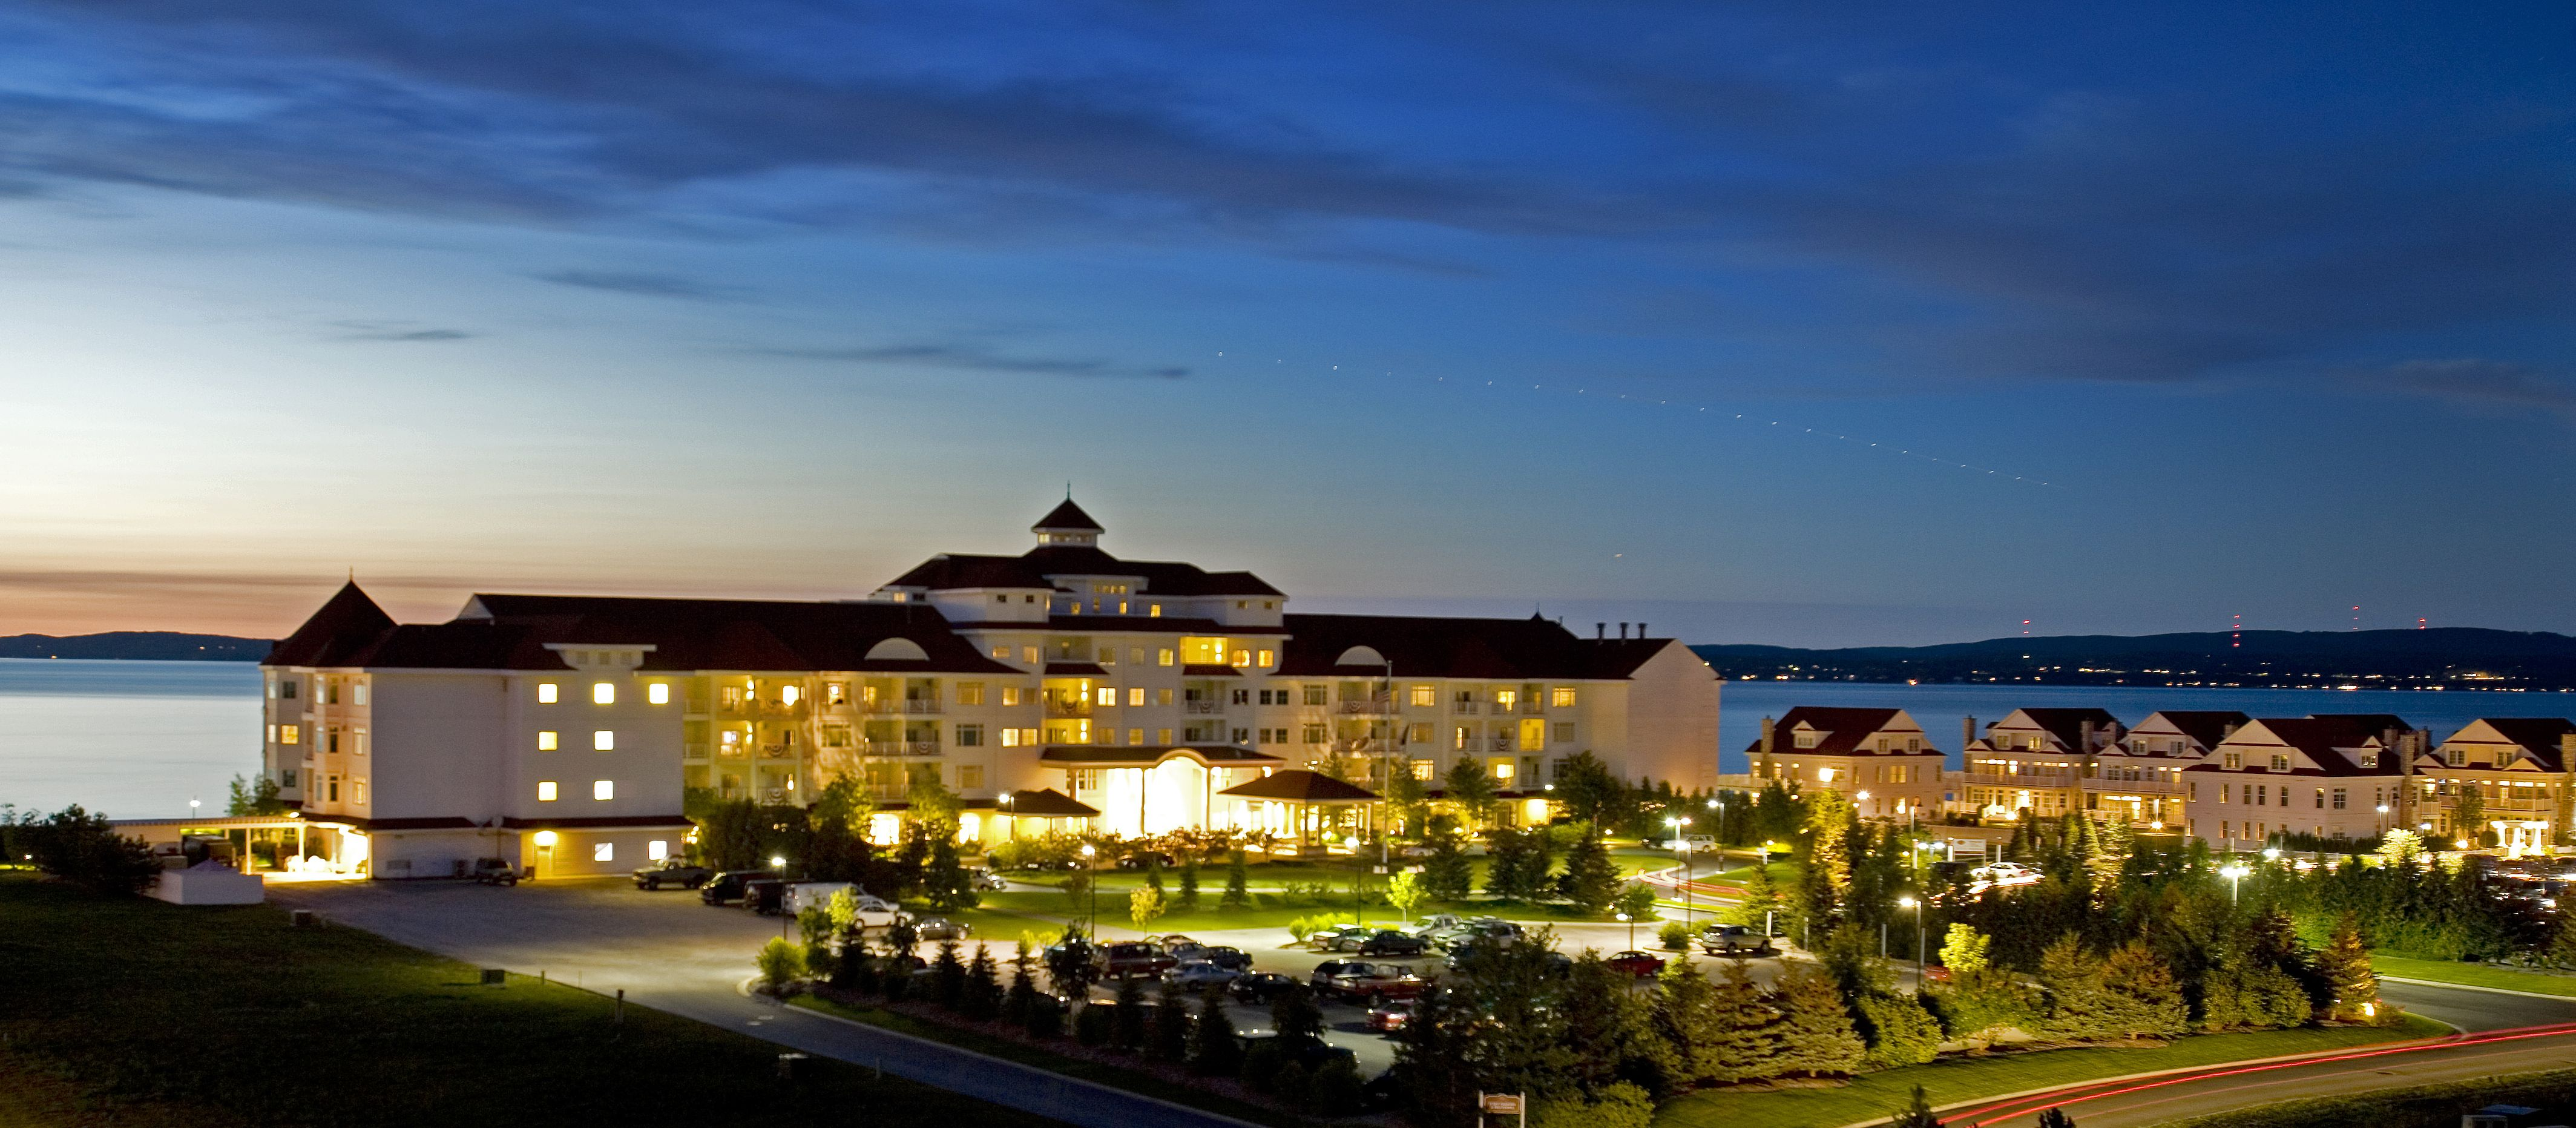 Northern Michigan Hotel Packages From Traverse City To Mackinac Island Including Shanty Creek Grand Resort Crystal Mountain And Boyne